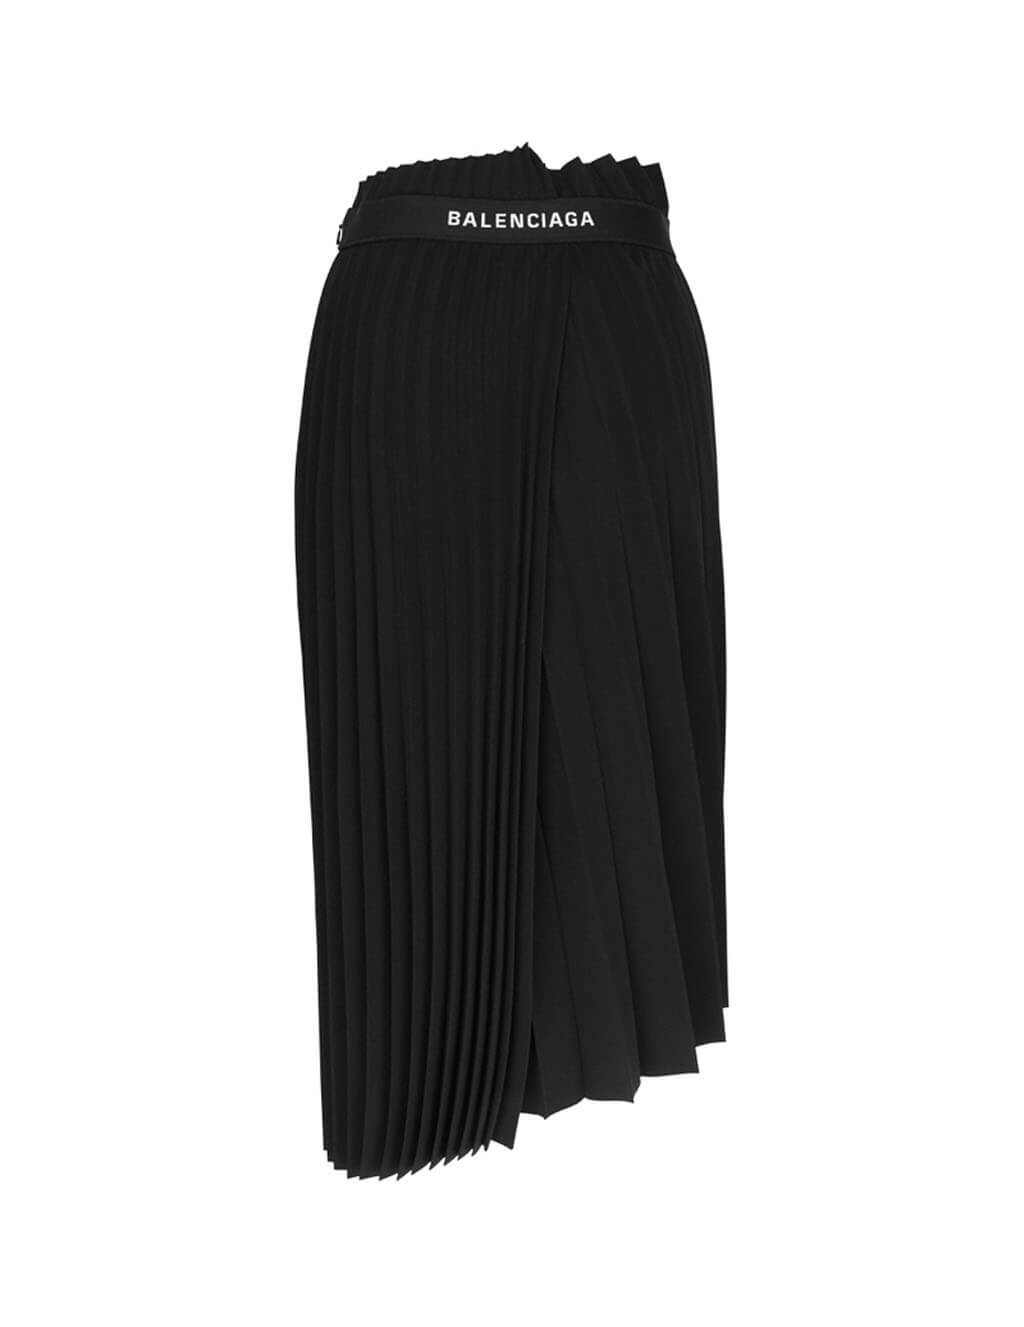 Balenciaga Women's Fiulio Fashion Black Fancy Pleated Skirt 529757TYD151000